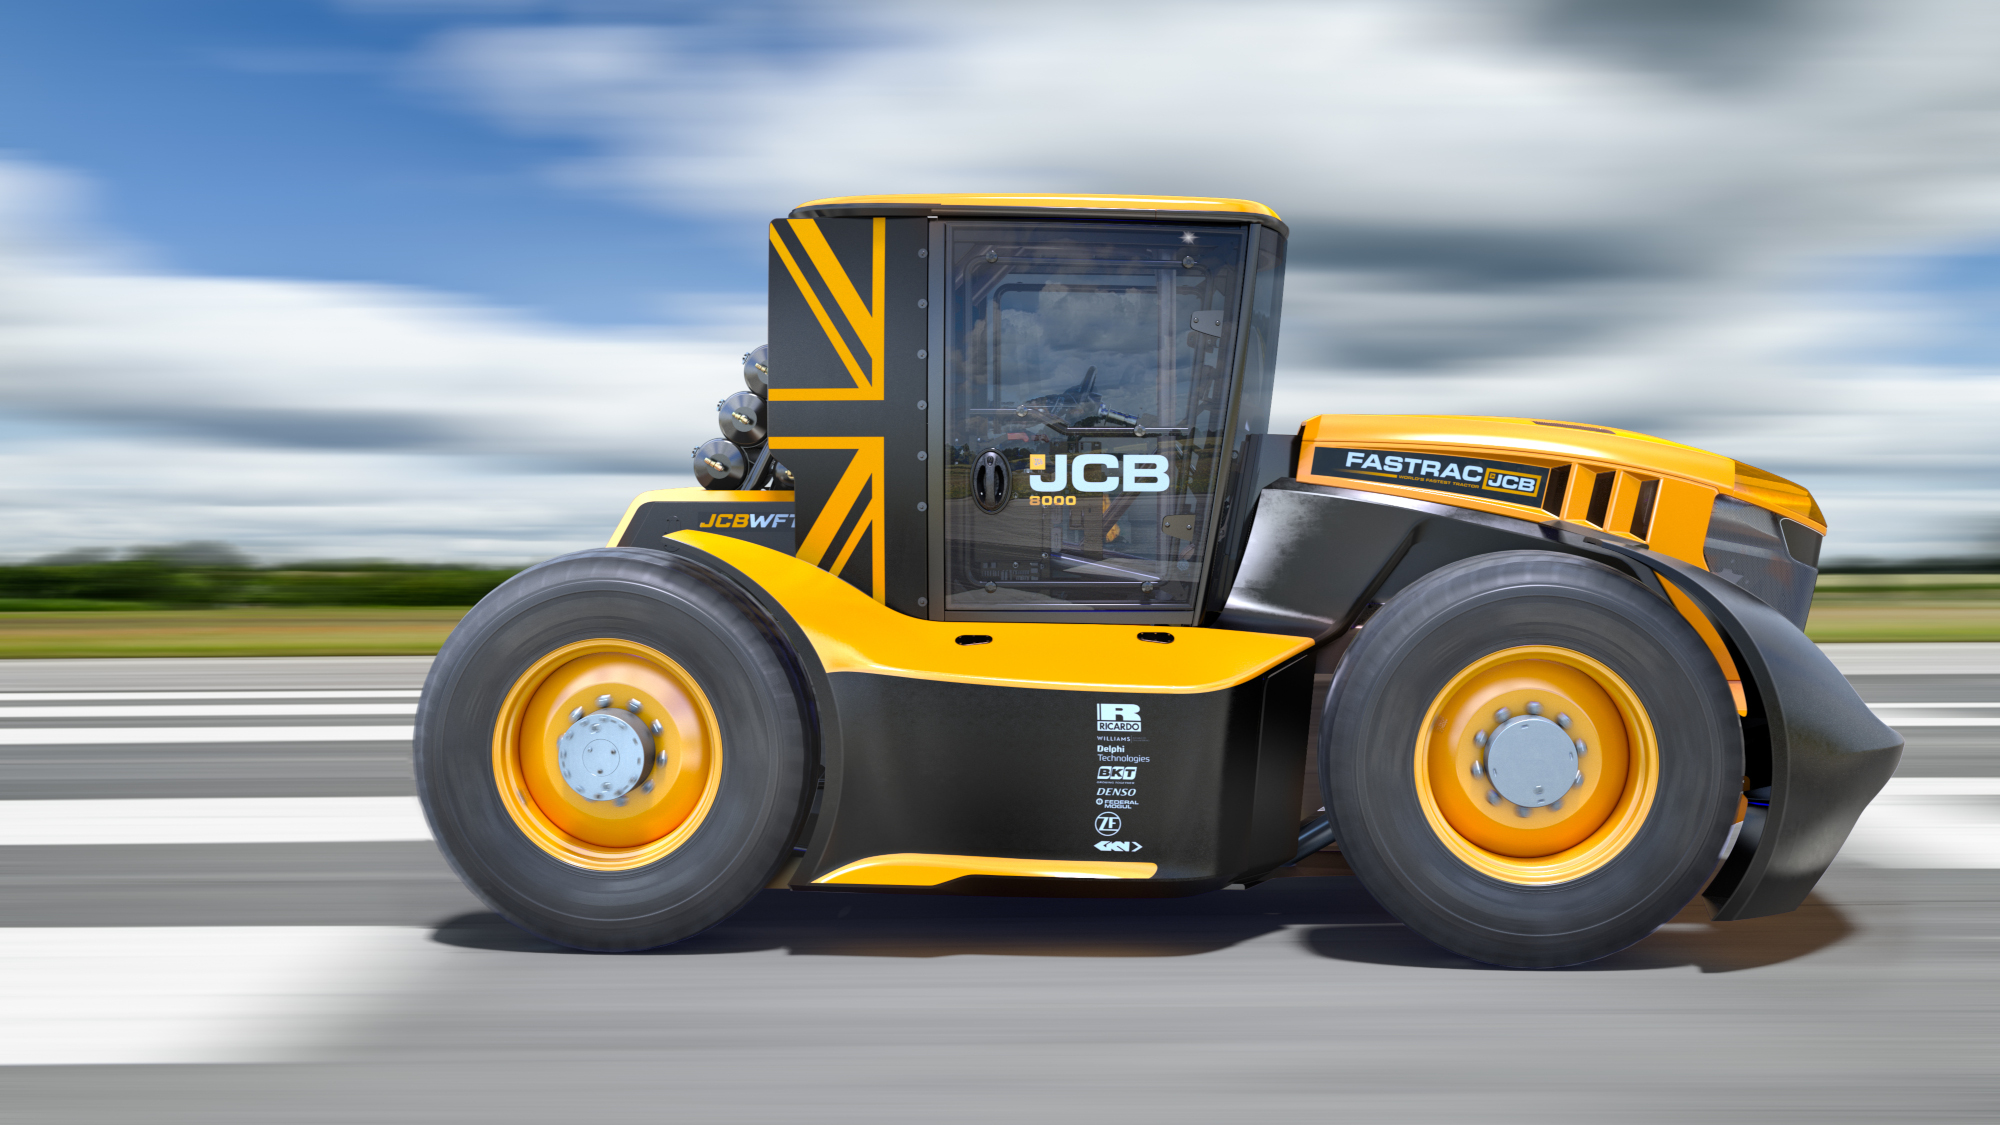 World's fastest tractor features GKN Wheels